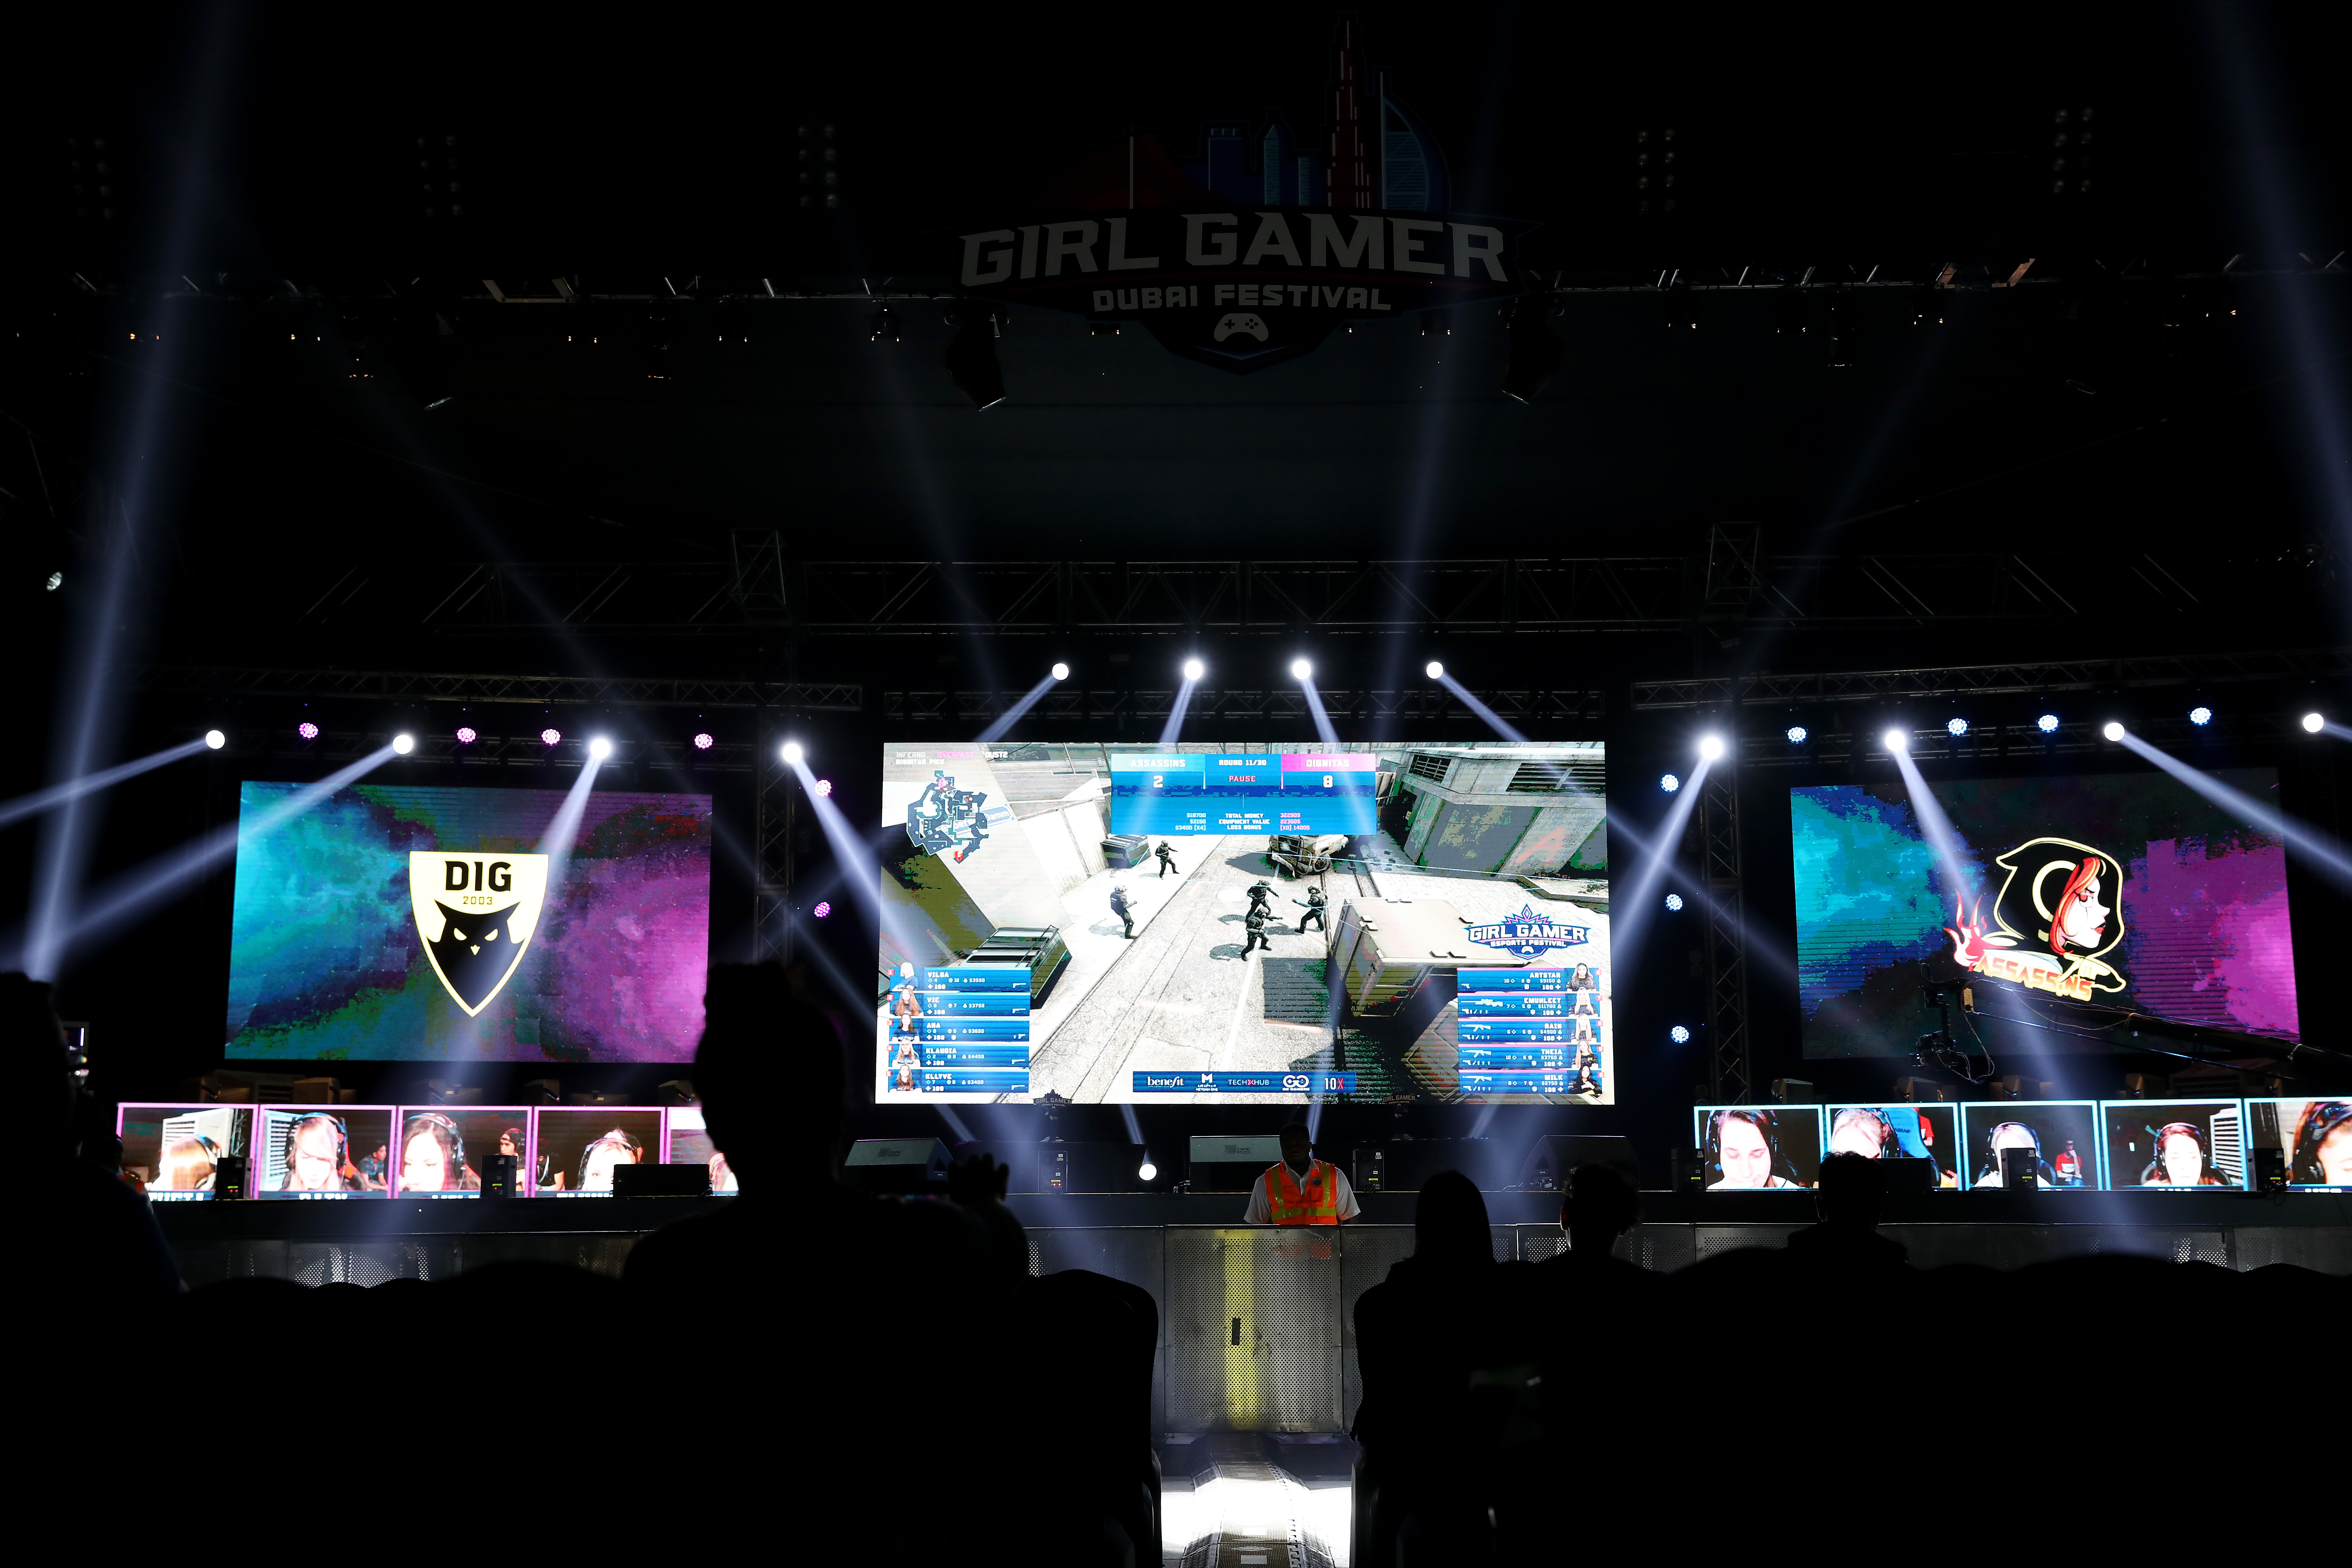 A general view of Team Assassins against Team Dignitas during the CS:GO World Finals on Day Two of the Girl Gamer Esports Festival at Meydan Racecourse on Feb. 22.